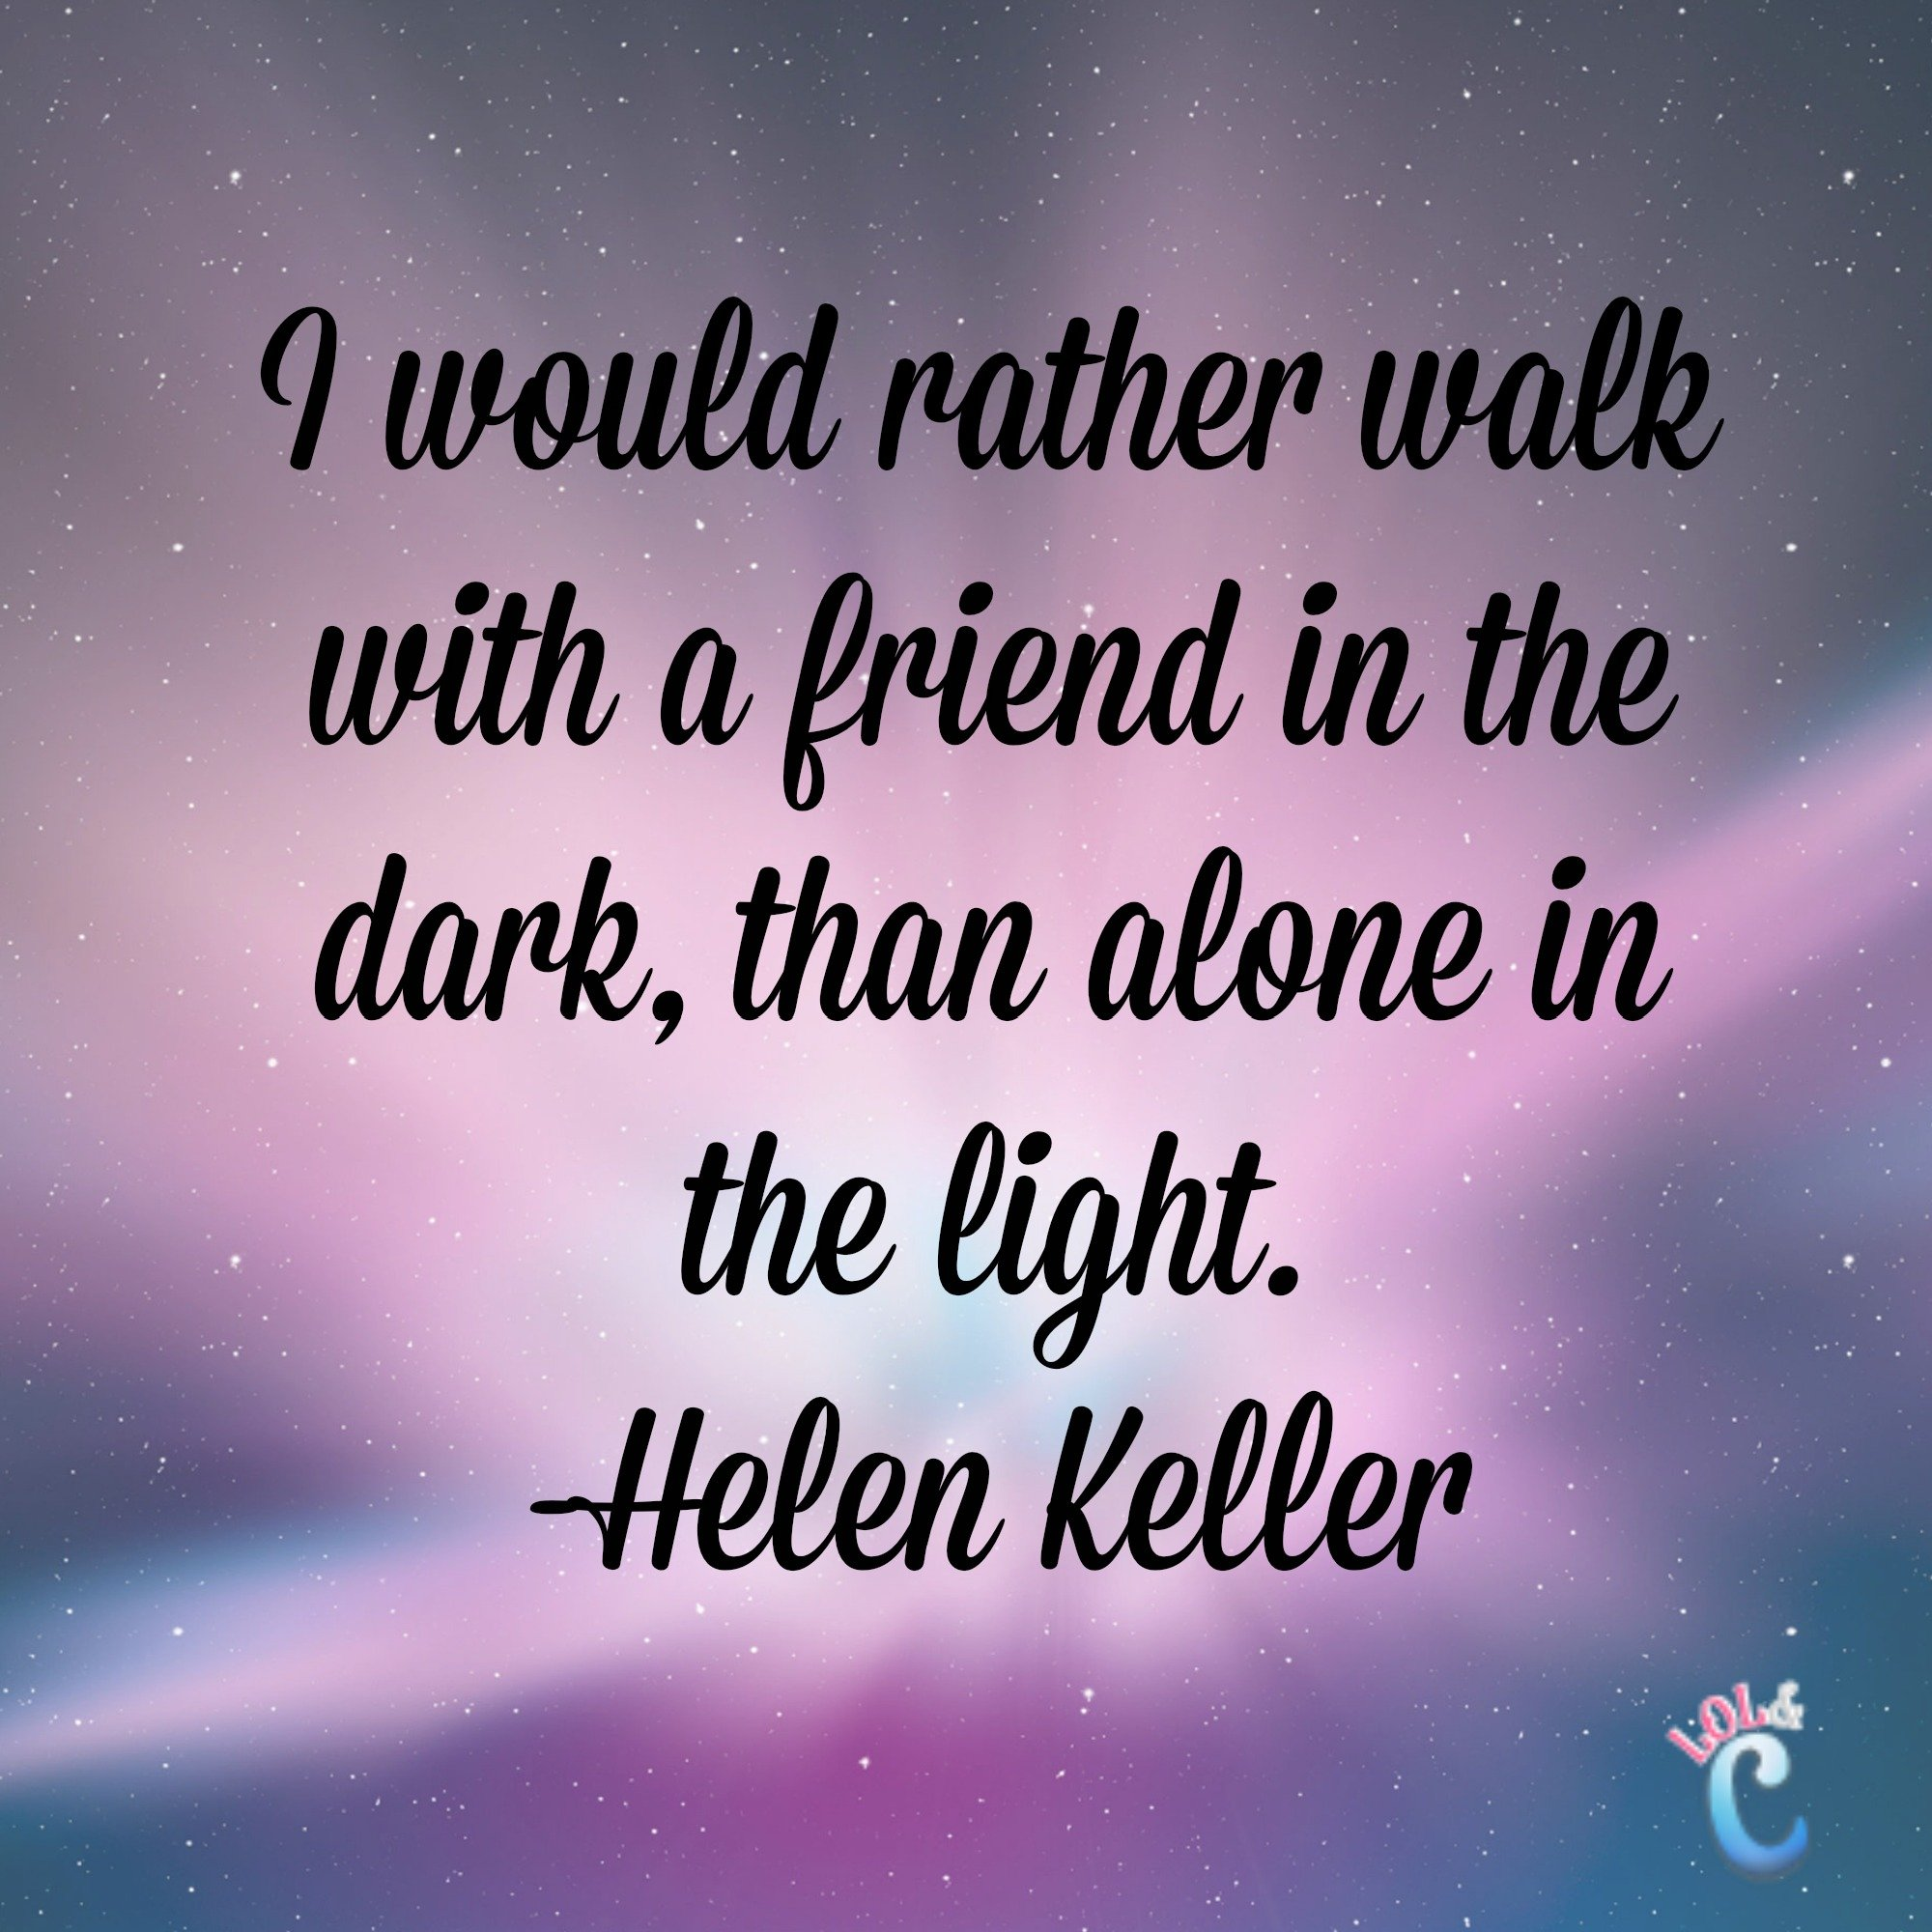 Funny Inspirational Quotes About Friendship: Helen Keller Quotes. QuotesGram